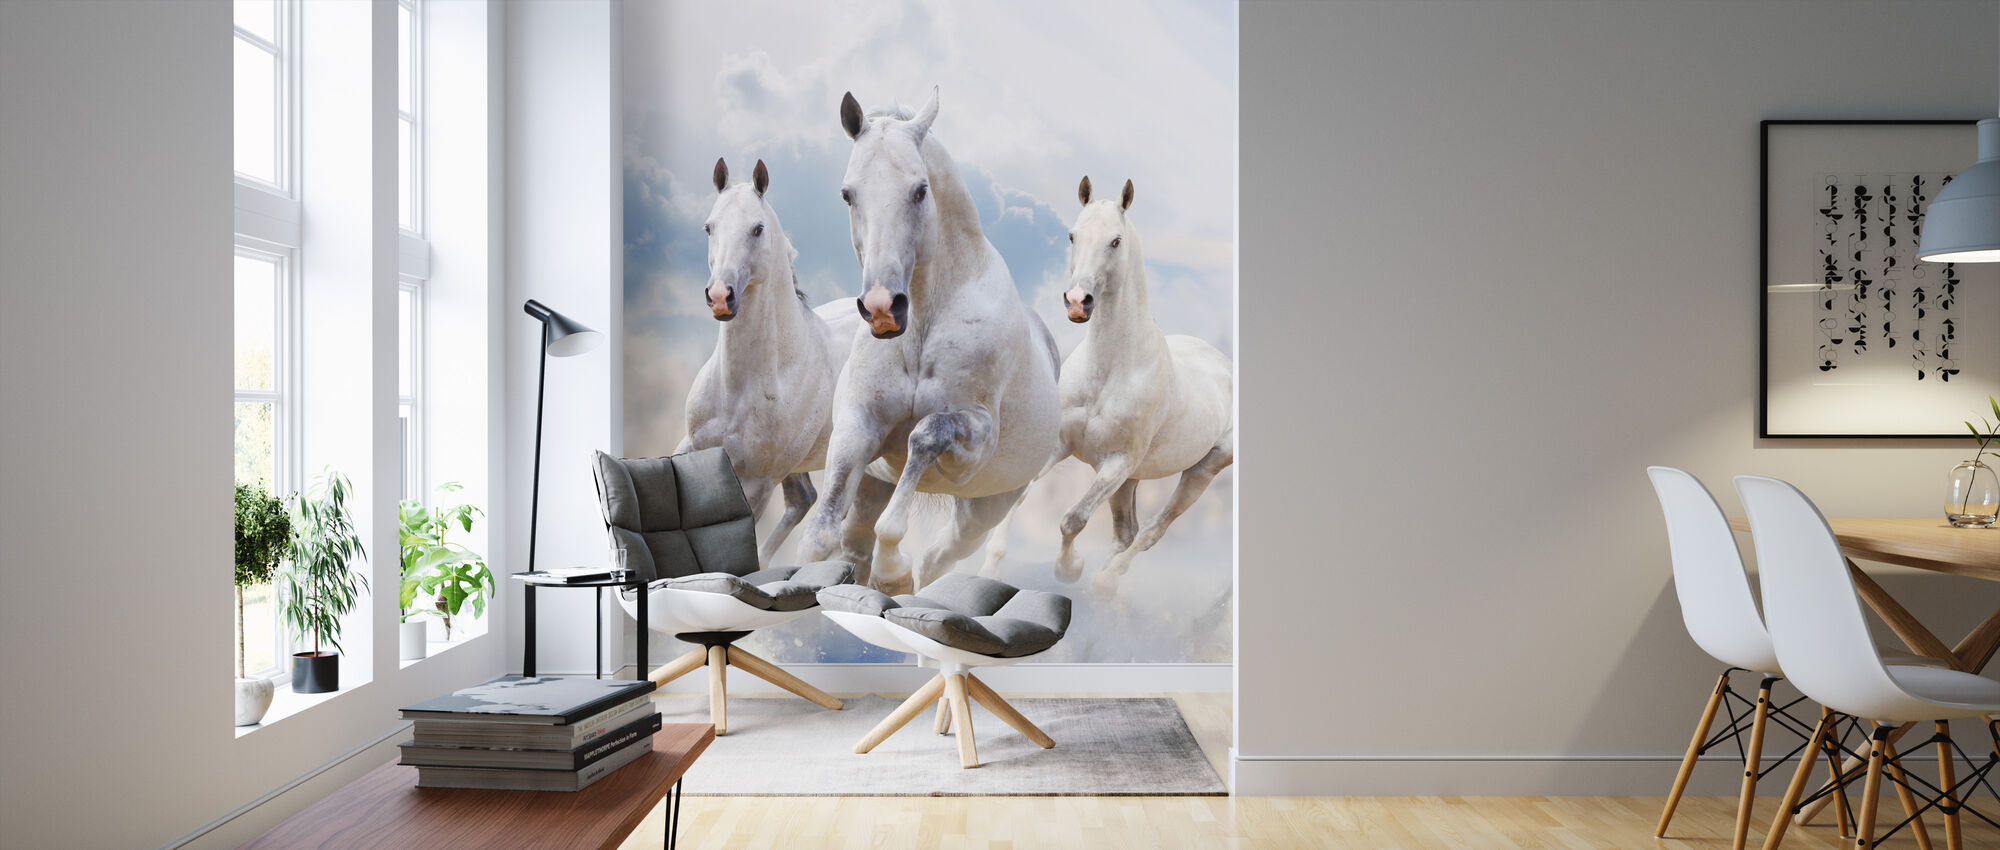 Sky Horses - Wallpaper - Living Room